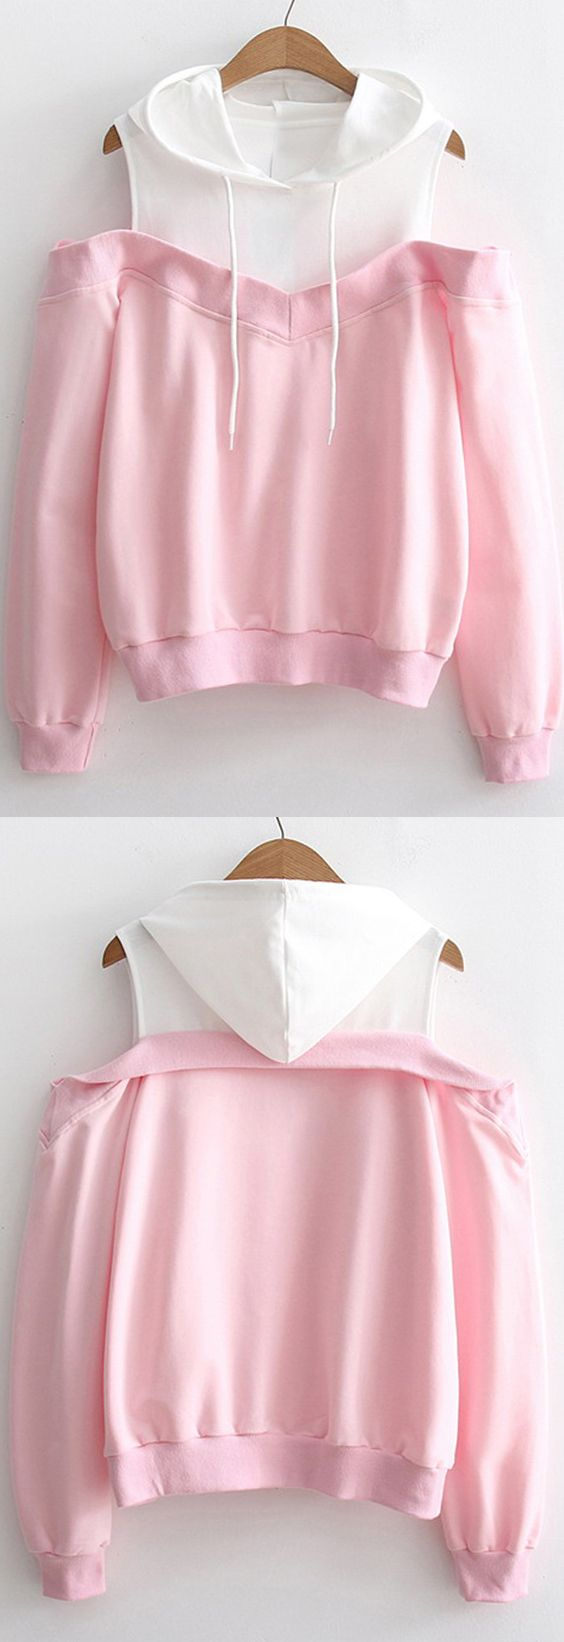 Up to 68% OFF! Two Tone Cold Shoulder Hoodie. Zaful,zaful.com,zaful fashion,tops,womens tops,outerwear,sweatshirts,hoodies,hoodies outfit,hoodies for teens,sweatshirts outfit,long sleeve tops,sweatshirts for teens,winter outfits,fall outfits,tops,sweatshirts for women,women's hoodies,womens sweatshirts,cute sweatshirts,floral hoodie,crop hoodies,oversized sweatshirt, halloween costumes,halloween,halloween outfits,halloween tops,halloween costume ideas. @zaful Extra 10% OFF Code:ZF2017